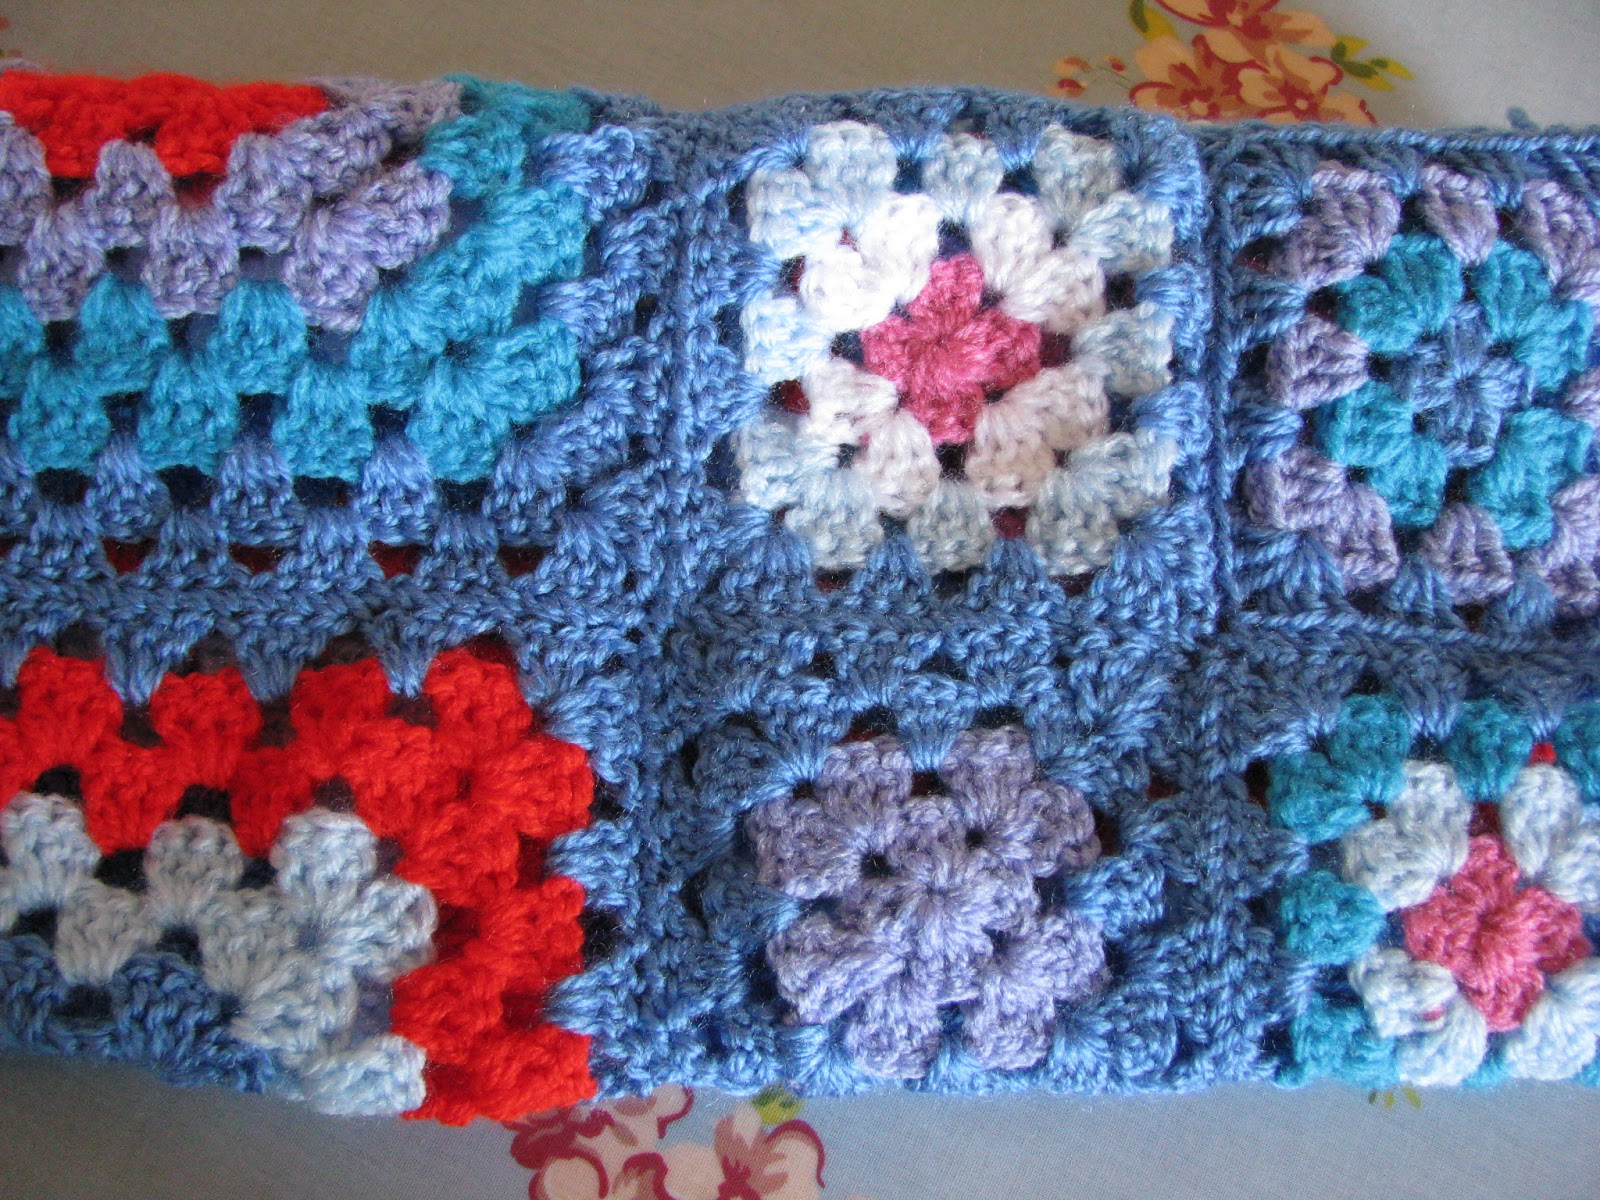 Crocheting Granny Squares Together Video : Shortbread & Ginger: Bright Crochet Granny Squares